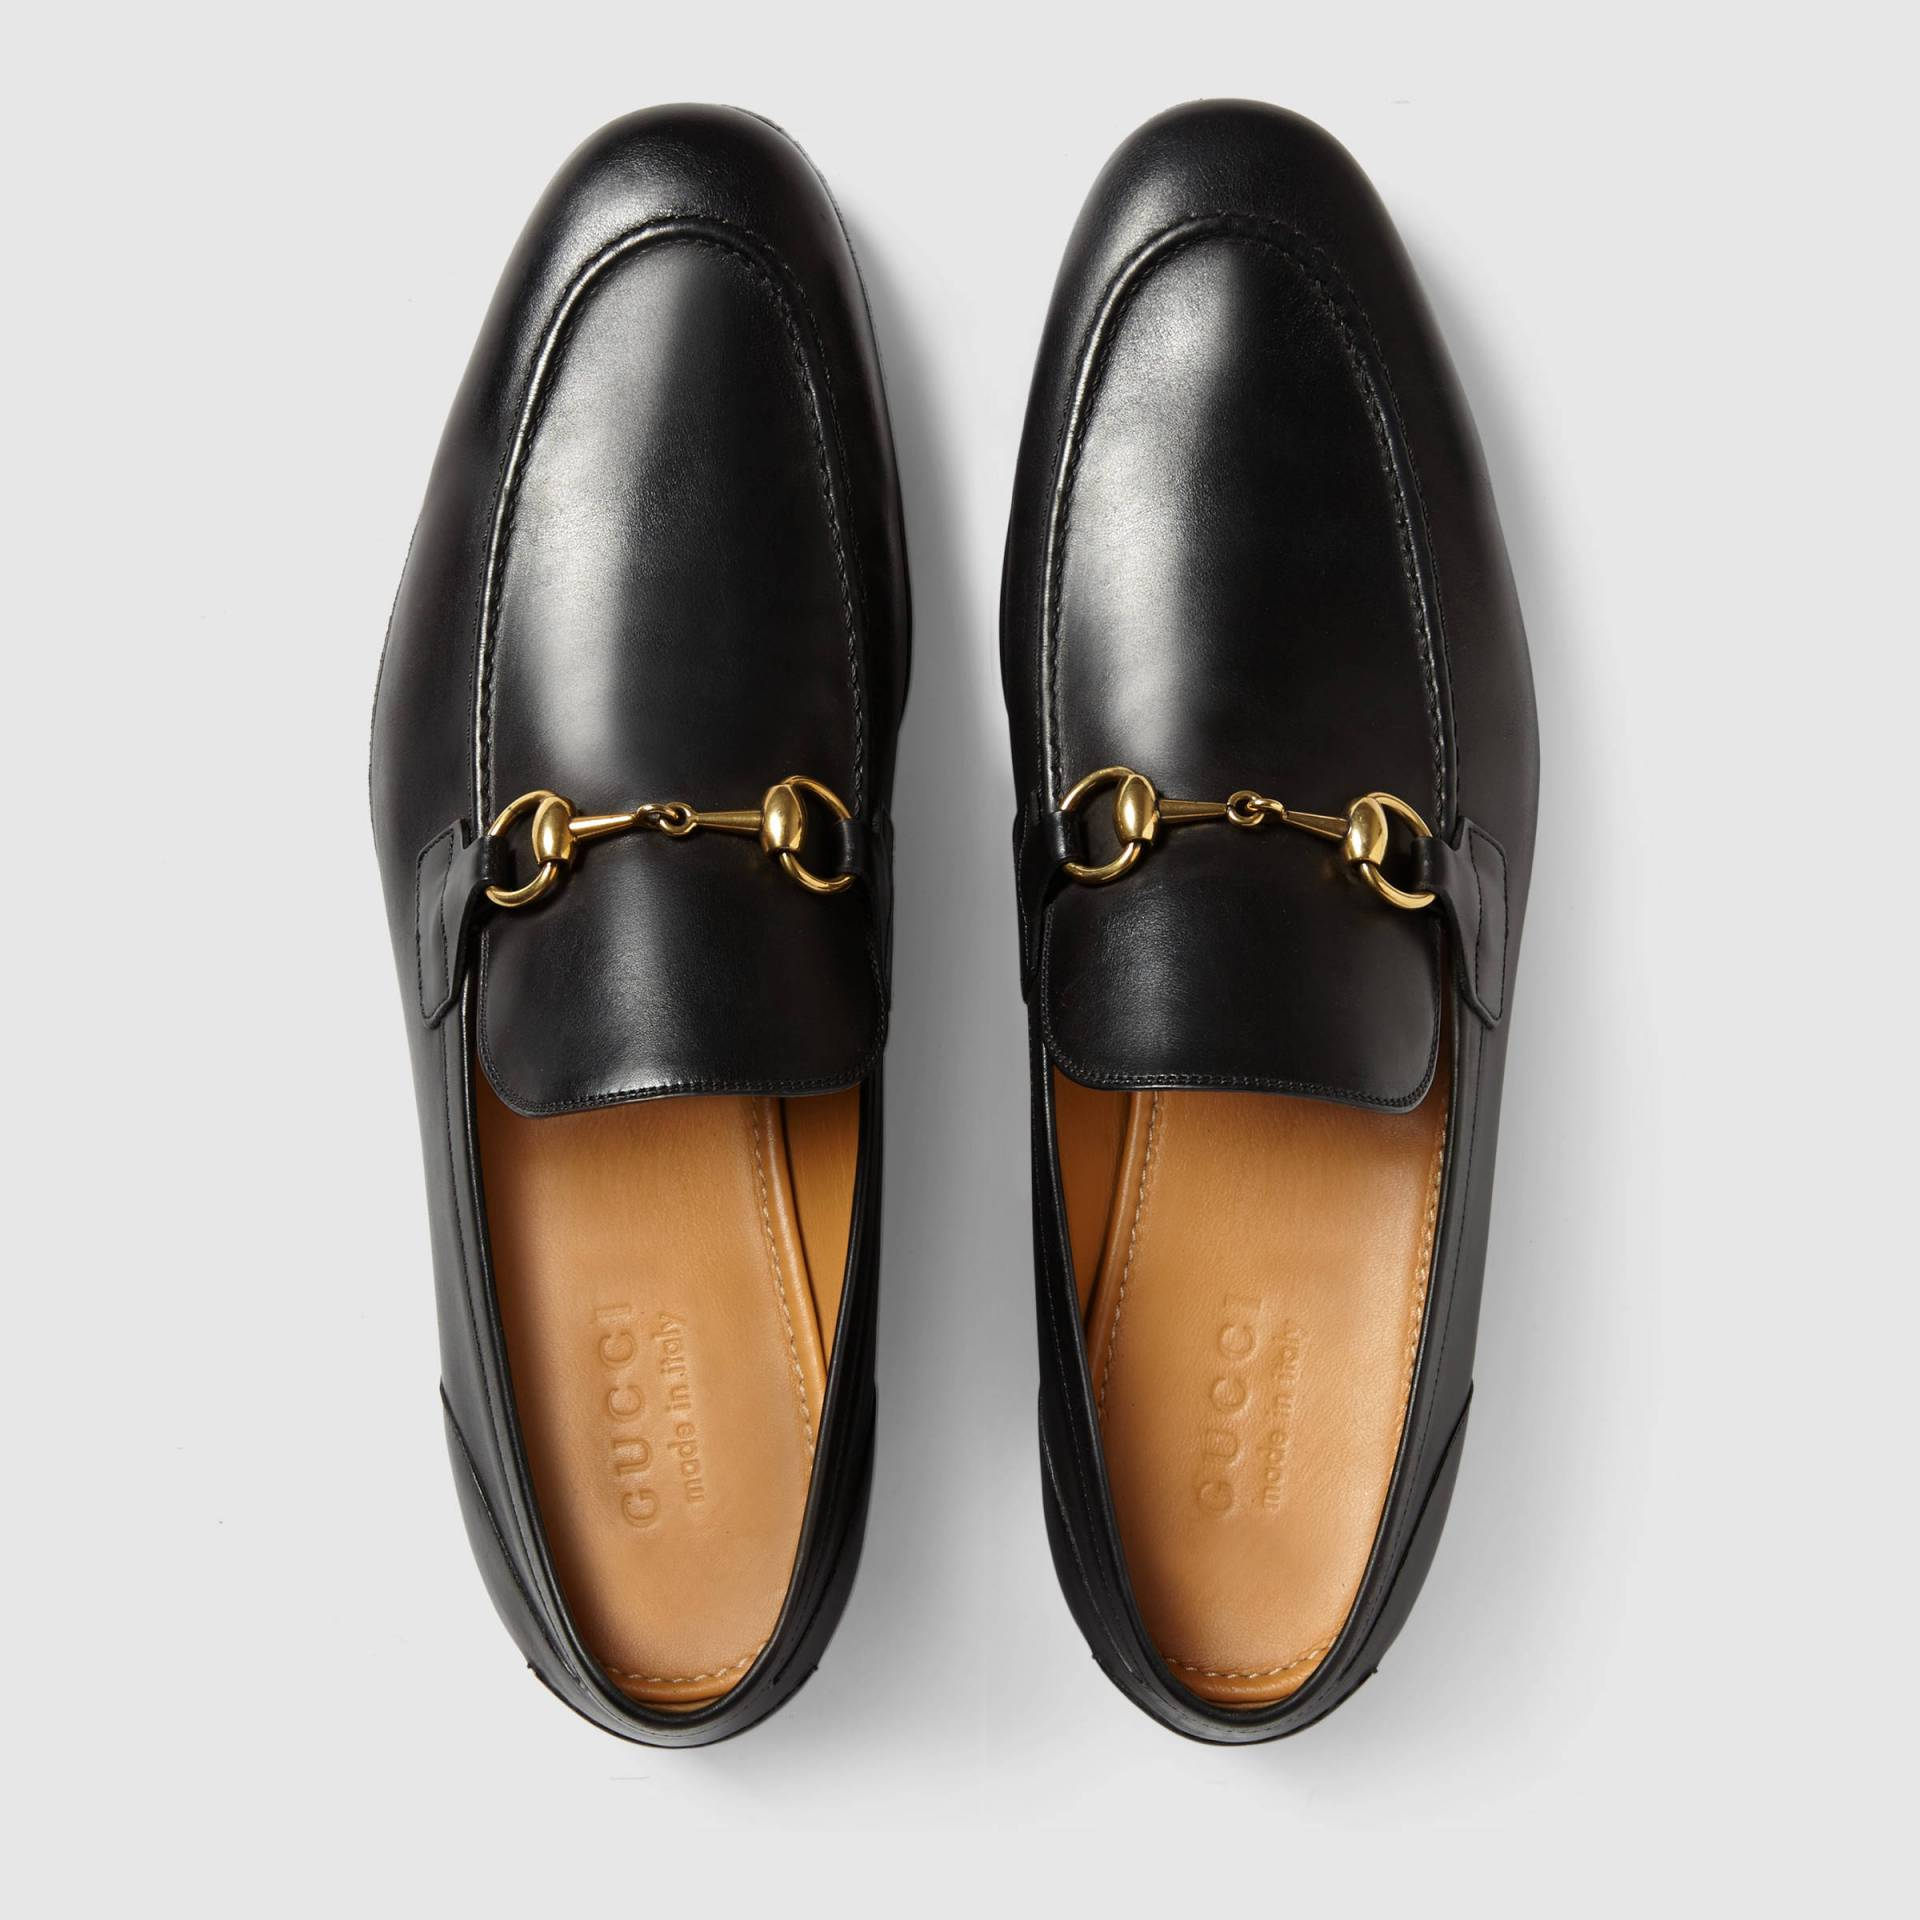 406994_BLM00_1000_003_100_0000_Light-Gucci-Jordaan-leather-loafer